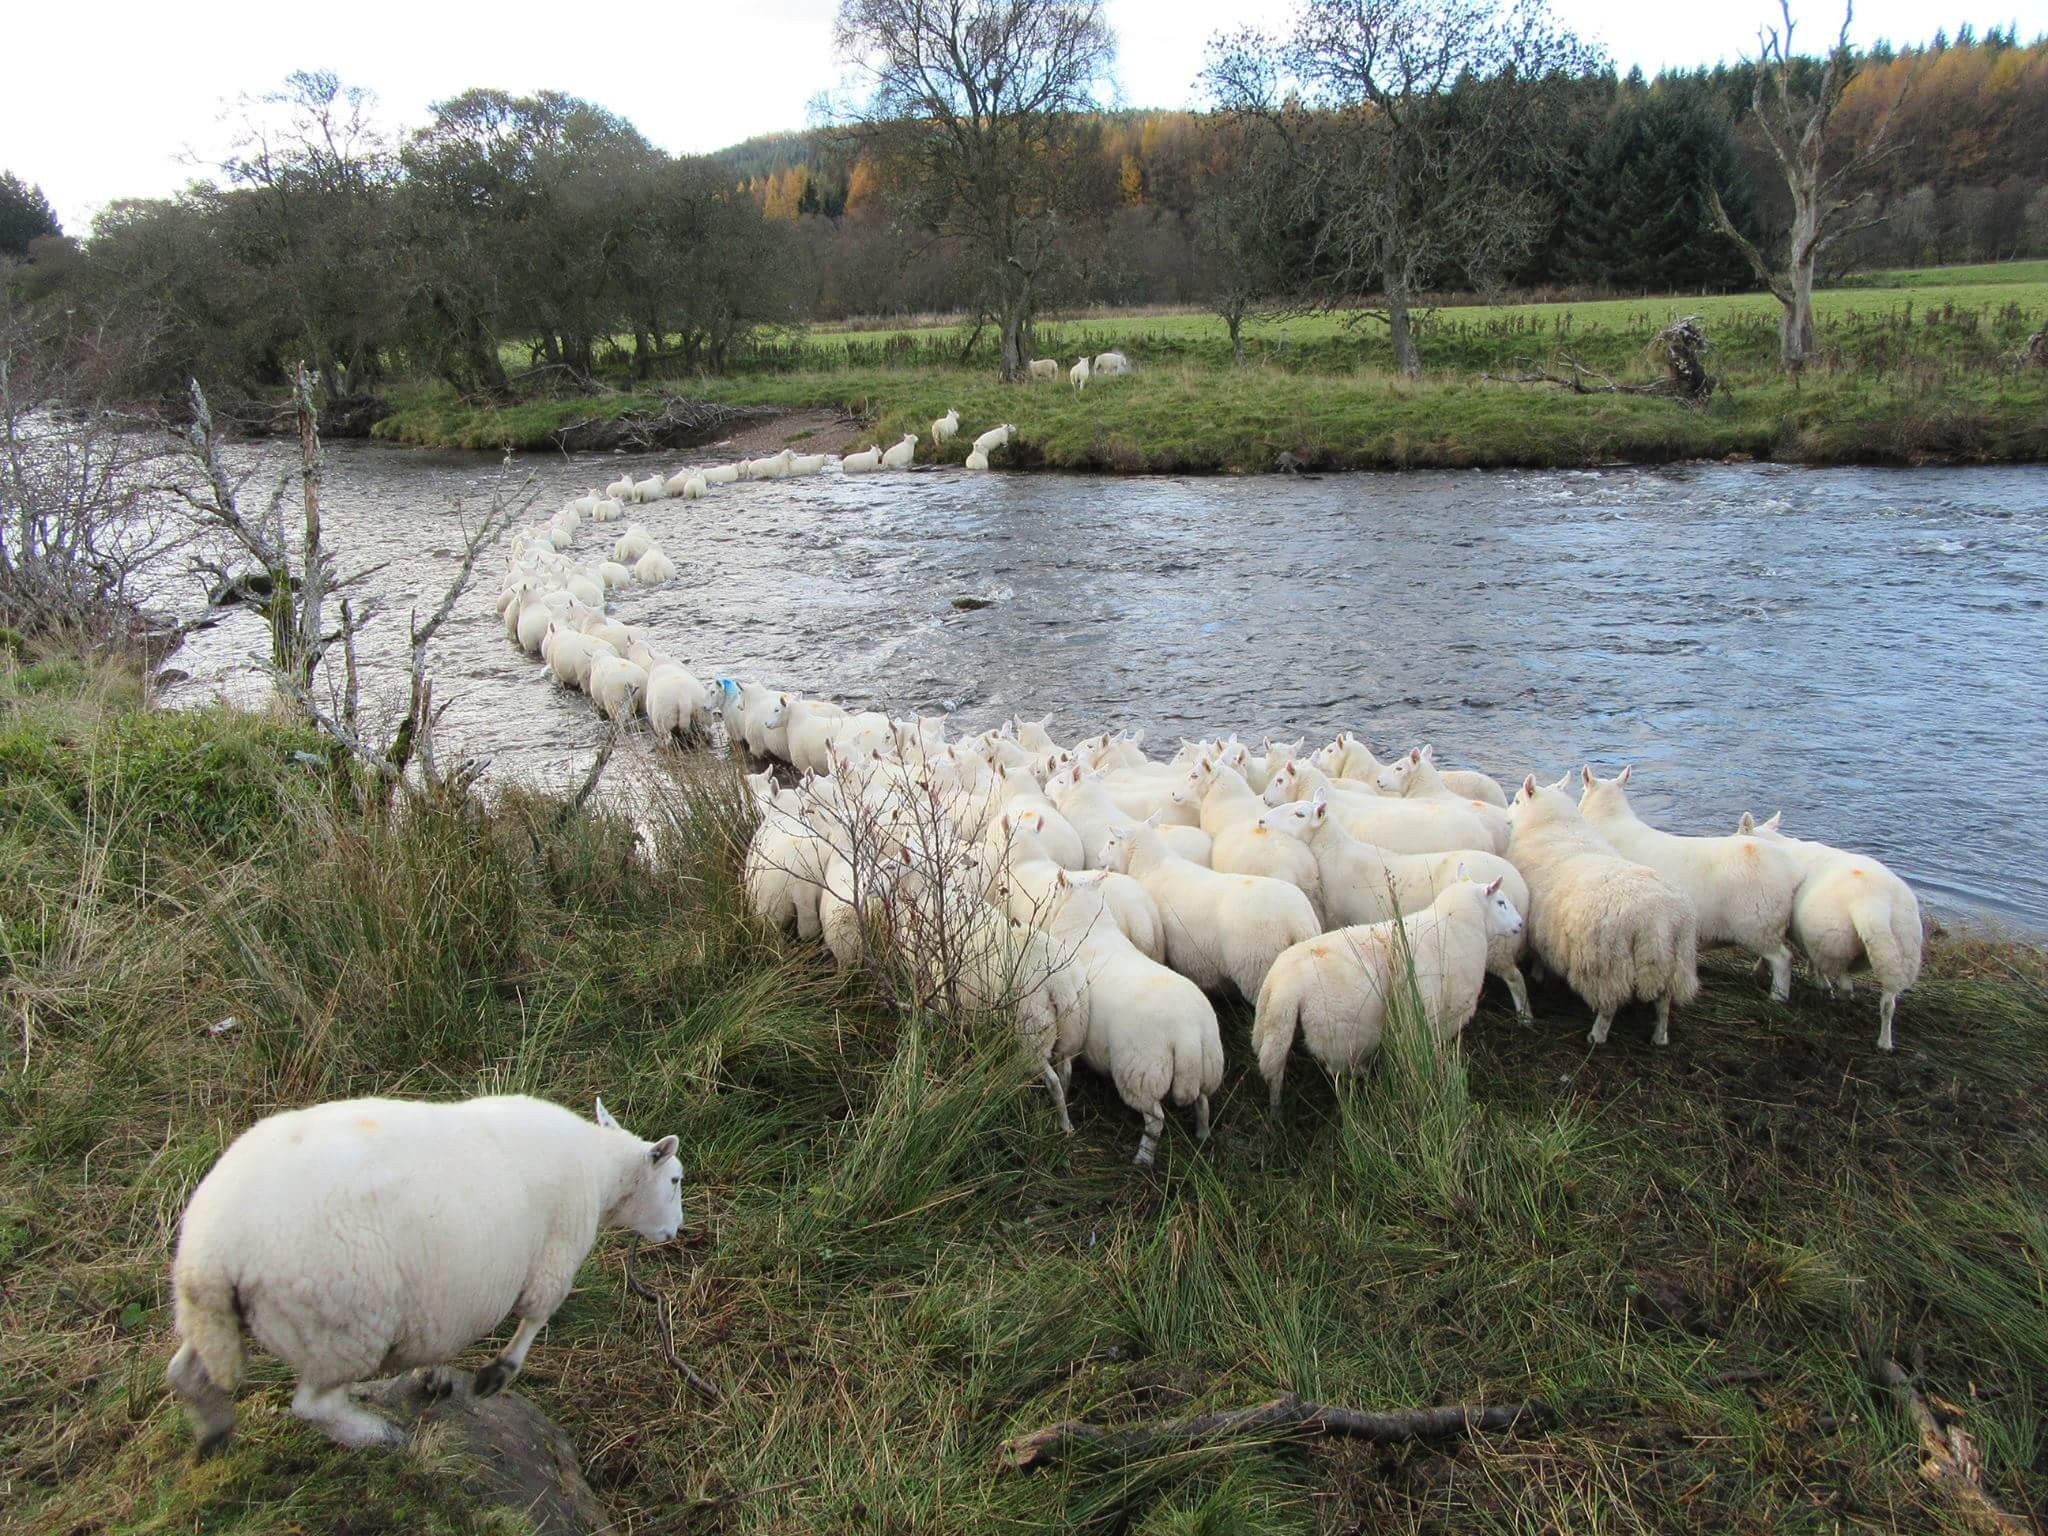 Many rivers to cross... 2017 was a challenging year for Scotland's farming industry